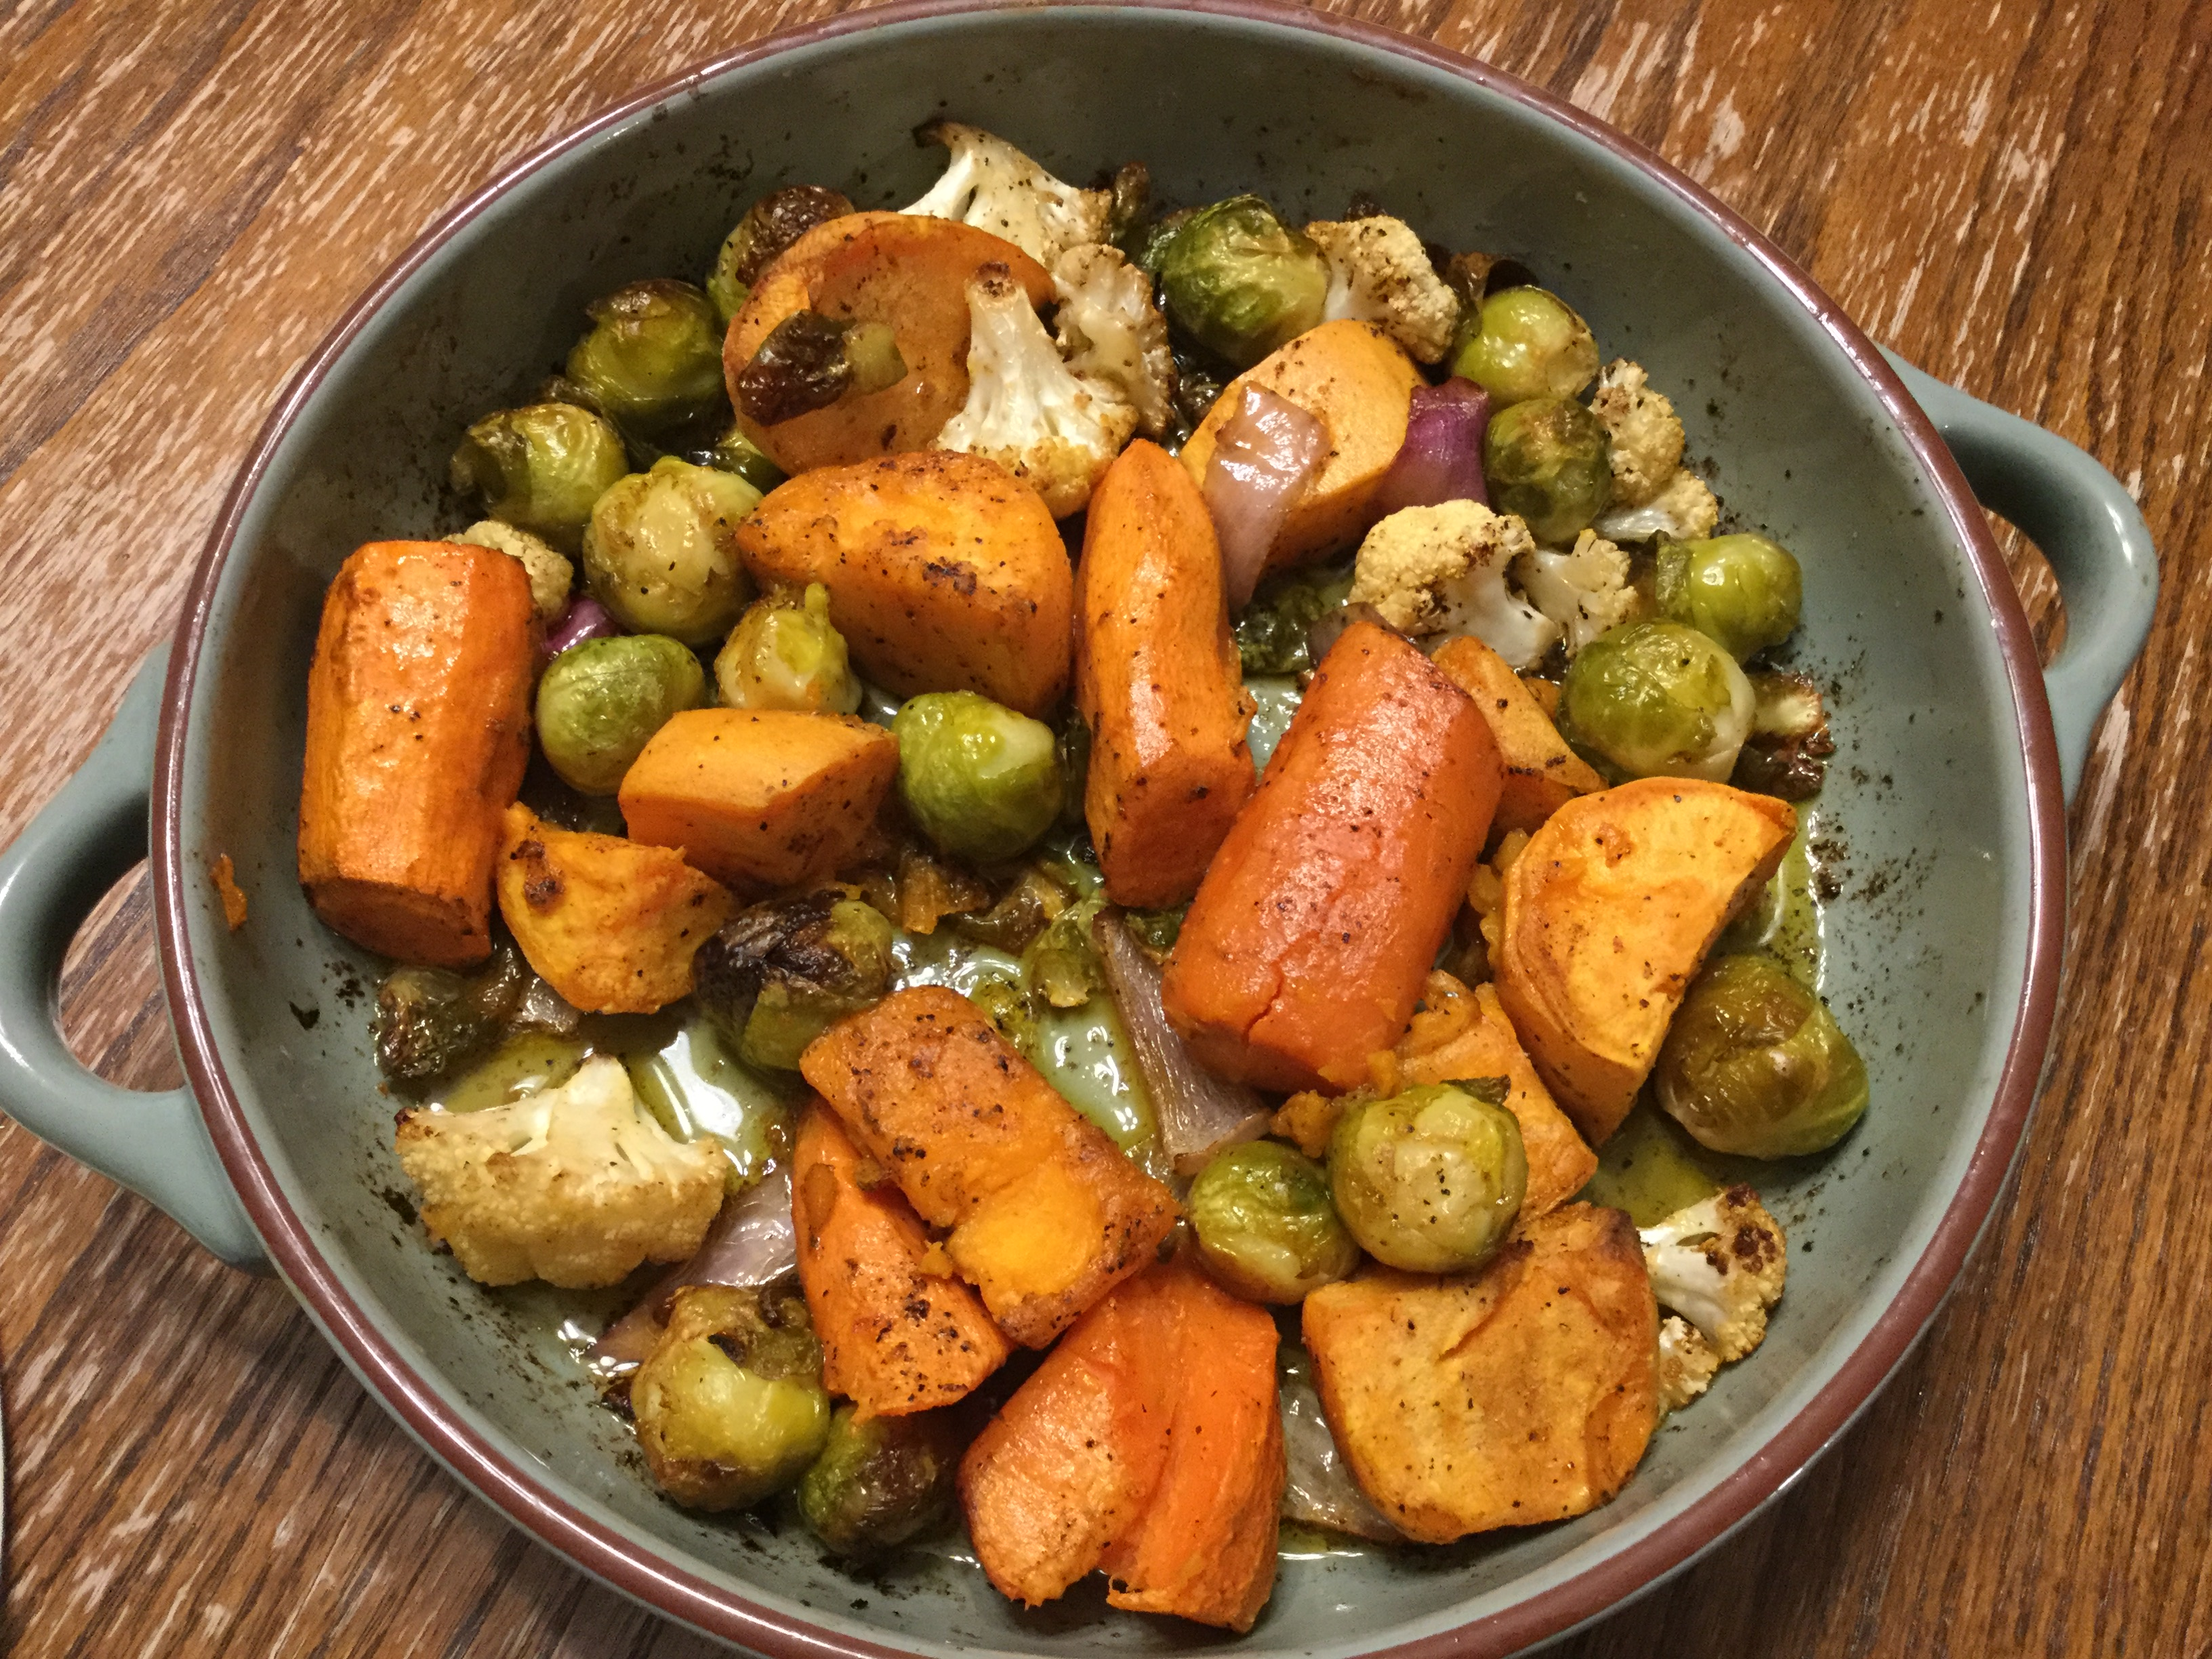 Roasted Vegetables for a Crowd